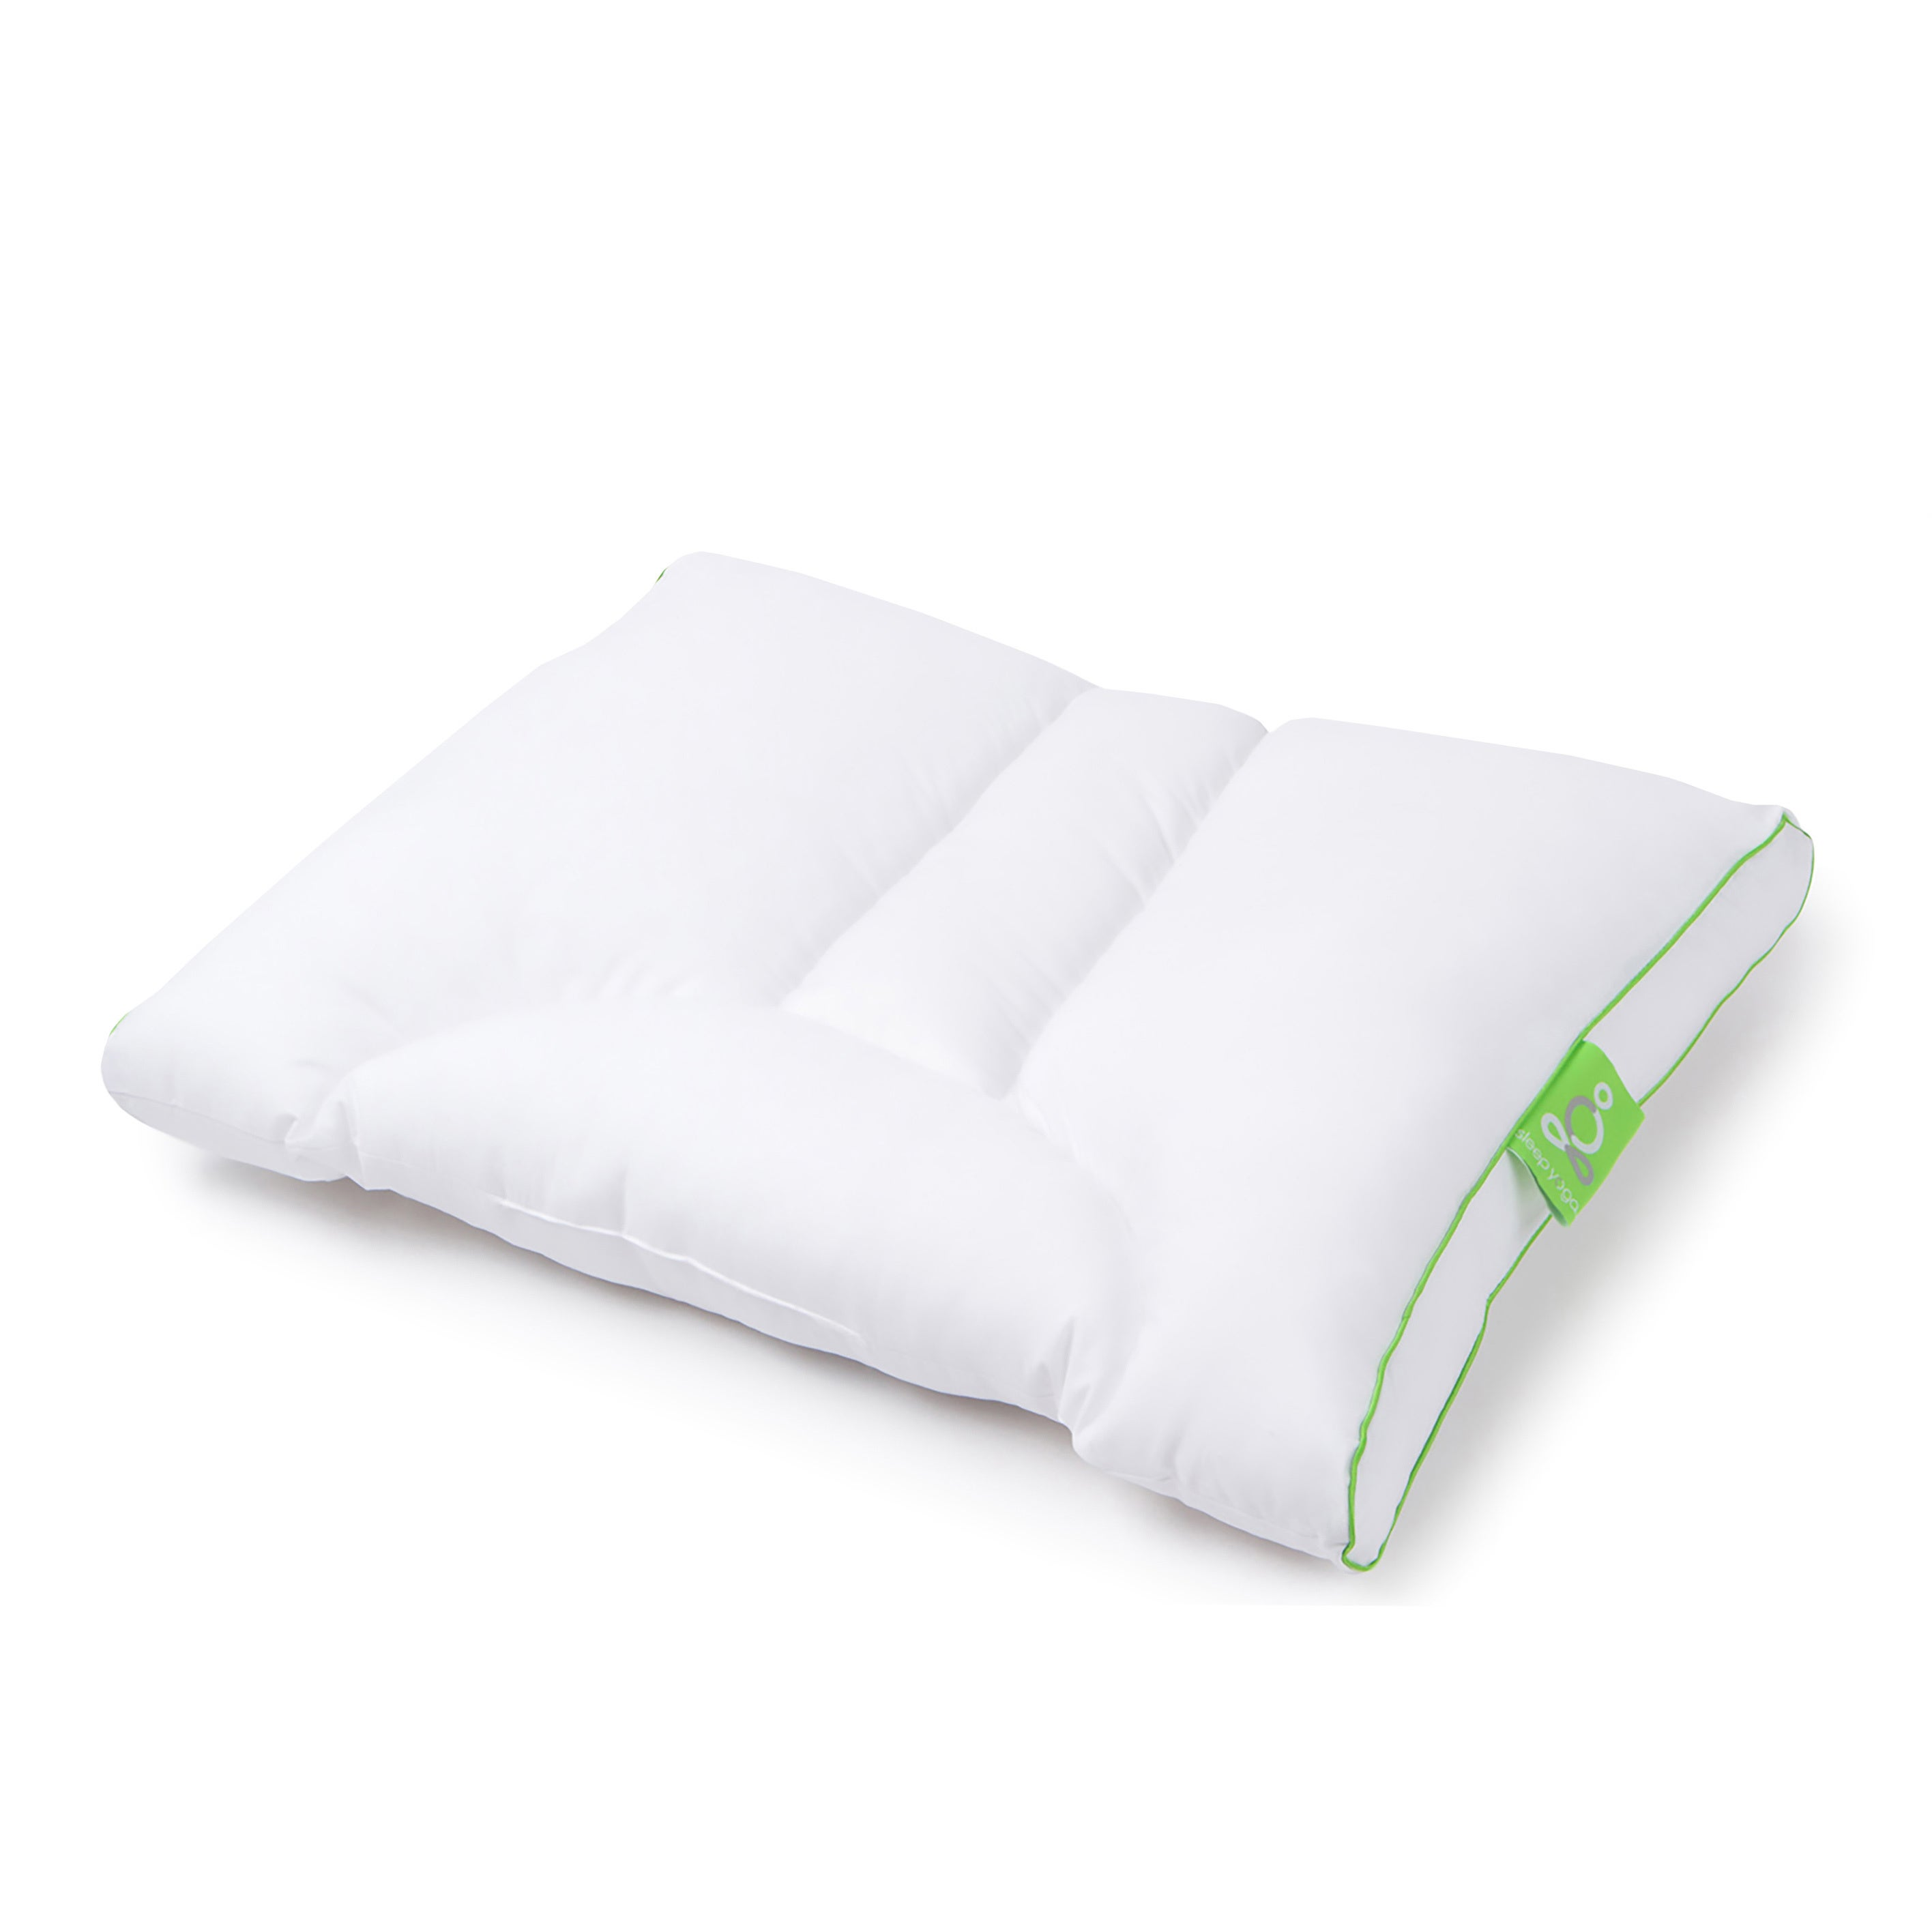 pillows therapillo tontine sleeper premium pillow profile for high dunlopillo memory foam side sleepers